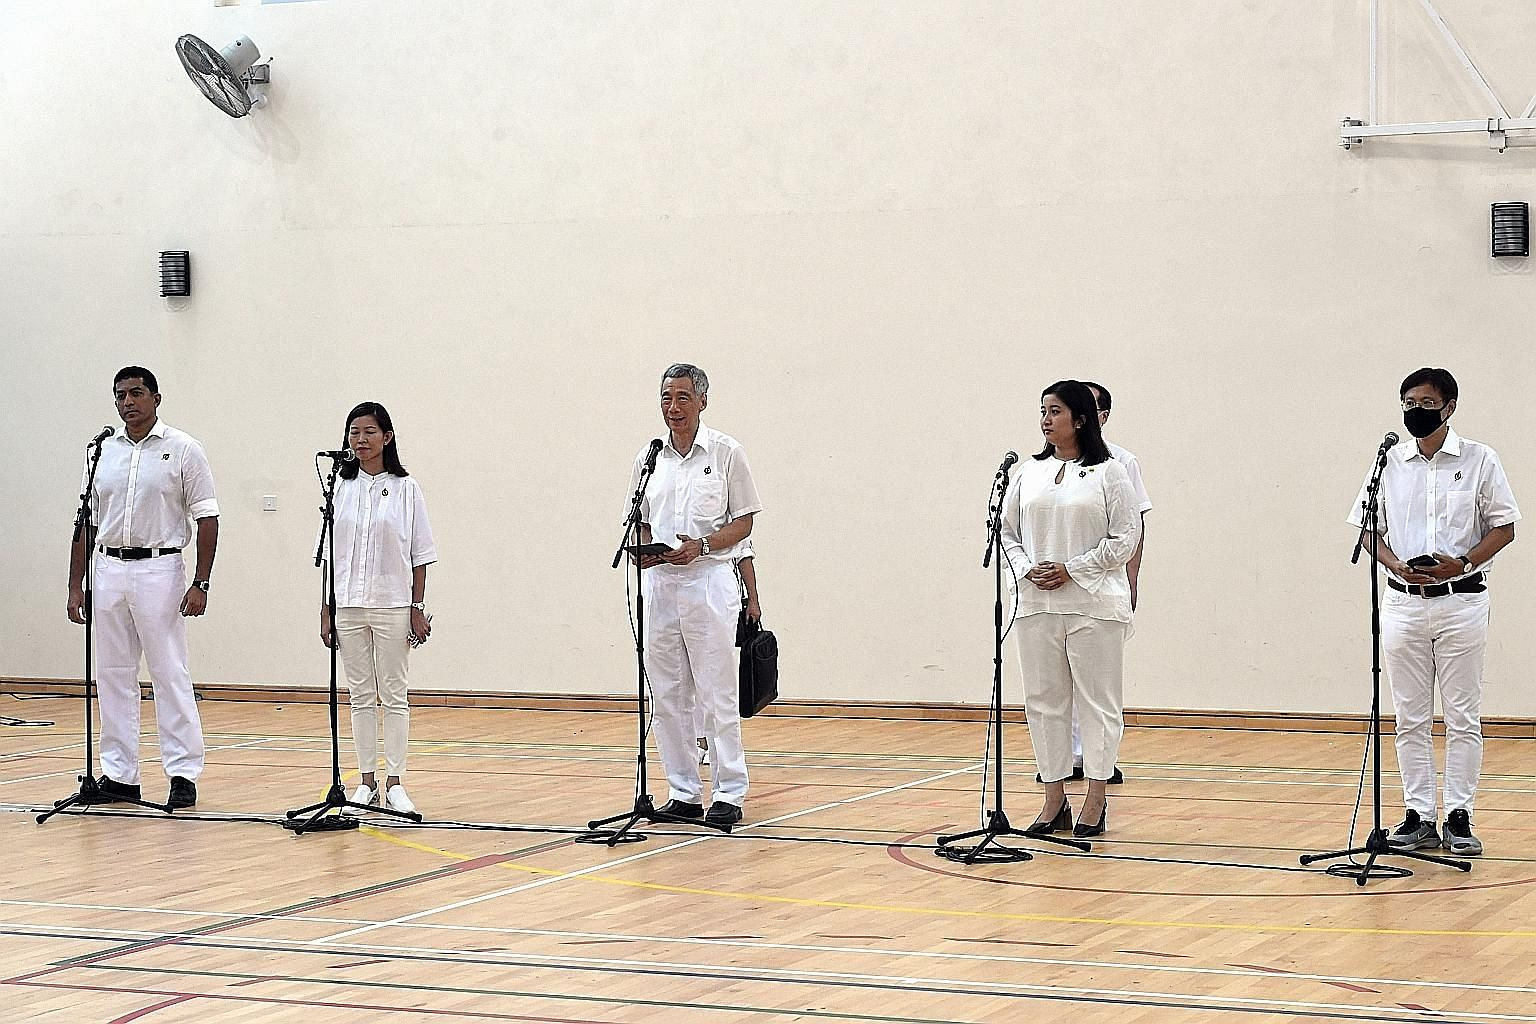 Prime Minister Lee Hsien Loong addressing voters with his Ang Mo Kio GRC team - (from left) Mr Darryl David, Ms Ng Ling Ling, Ms Nadia Ahmad Samdin and Mr Gan Thiam Poh - at the Deyi Secondary School nomination centre.